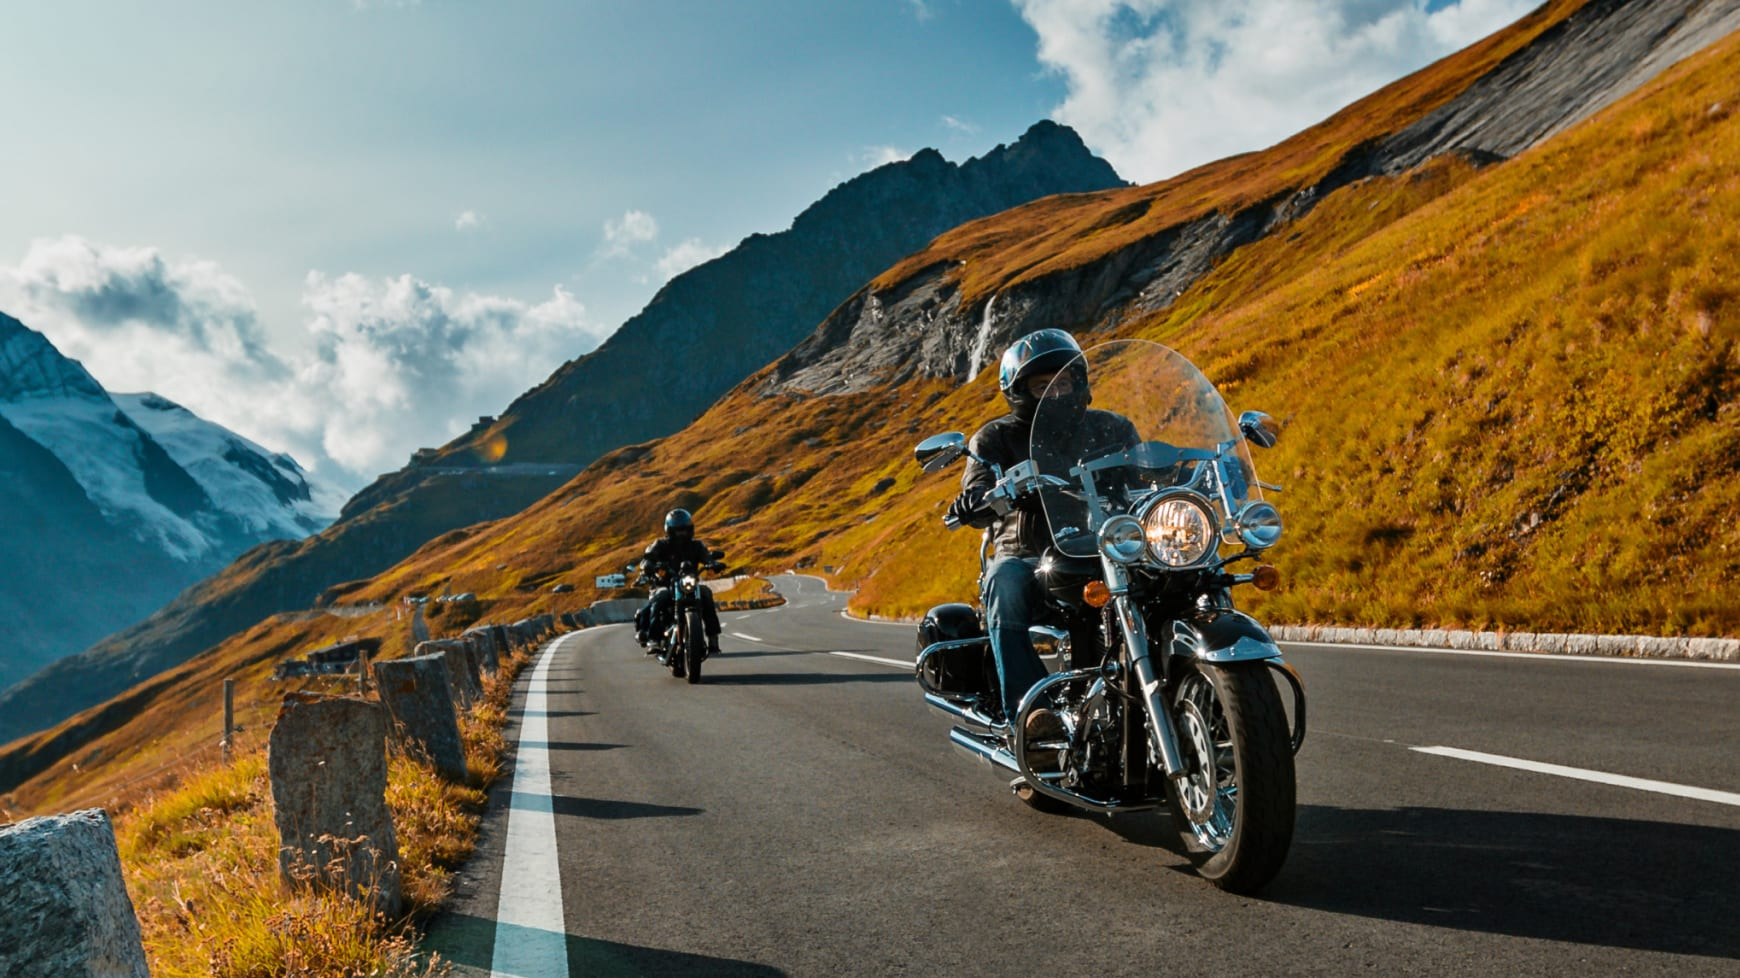 Two Motorcycles Driving On a Mountain Road